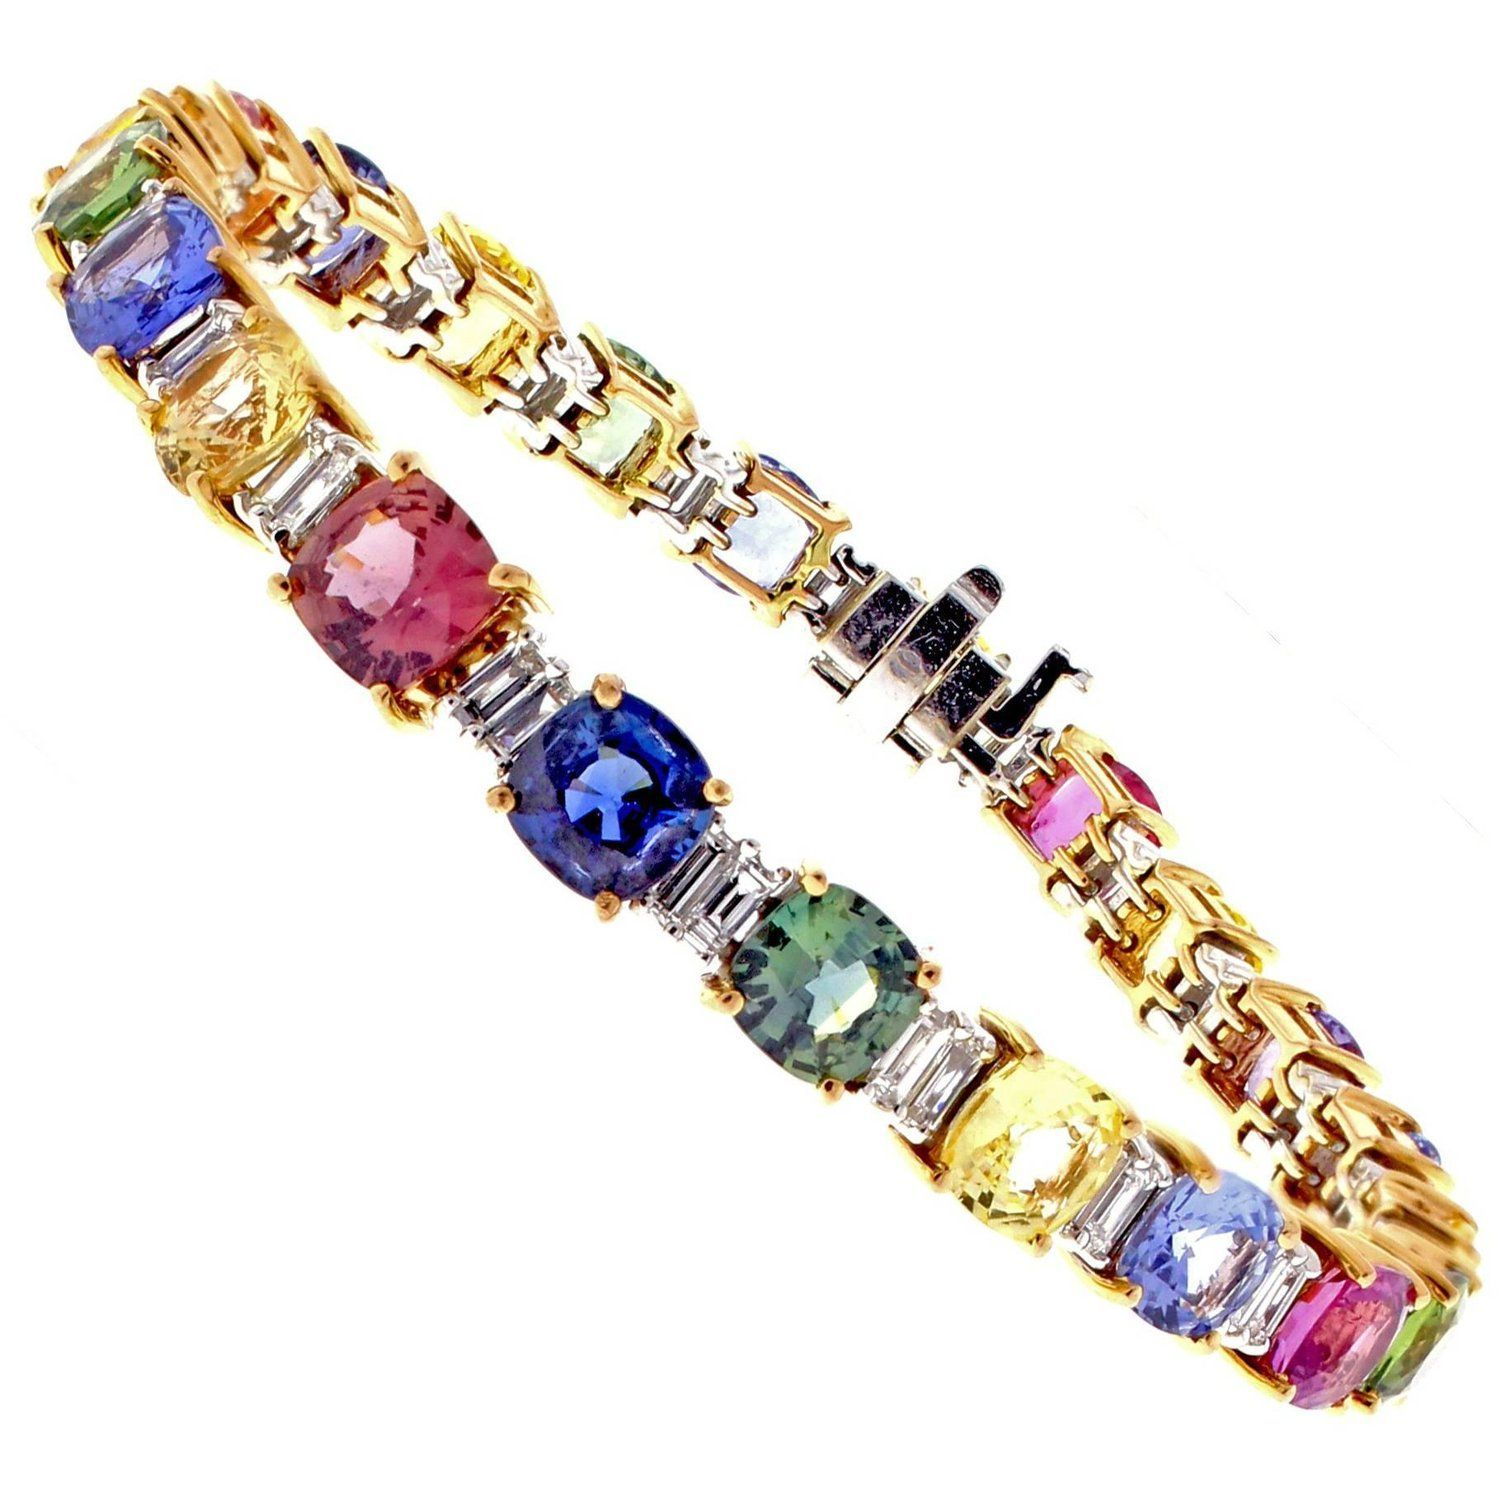 sapphires karat weight total products color eternity ring band gold sapphire multicolored w diamonds multi carat